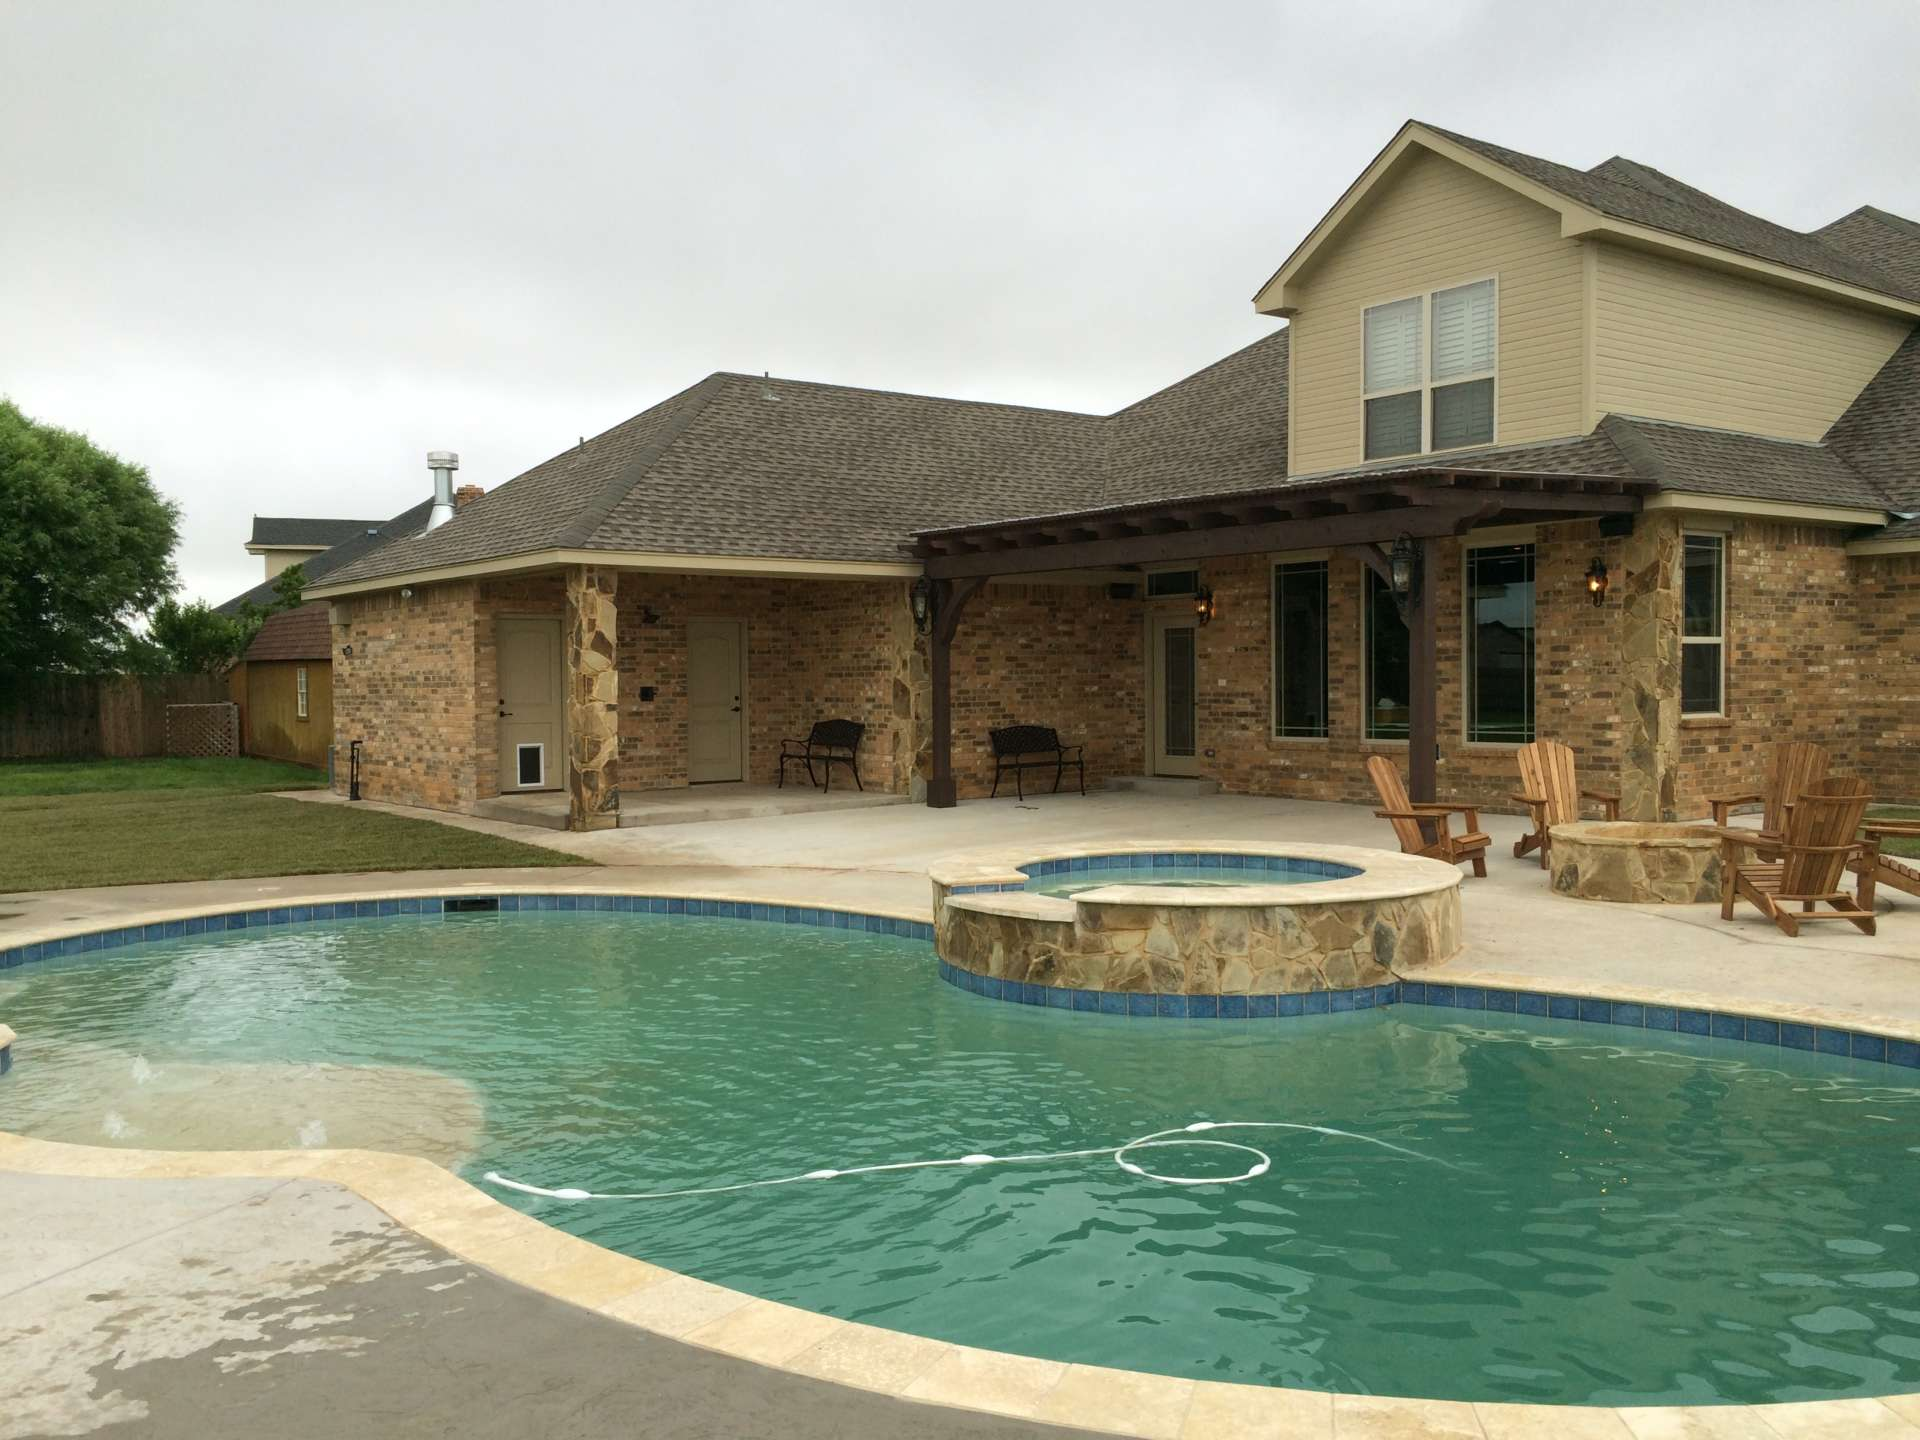 Custom patio, pool and hot tub